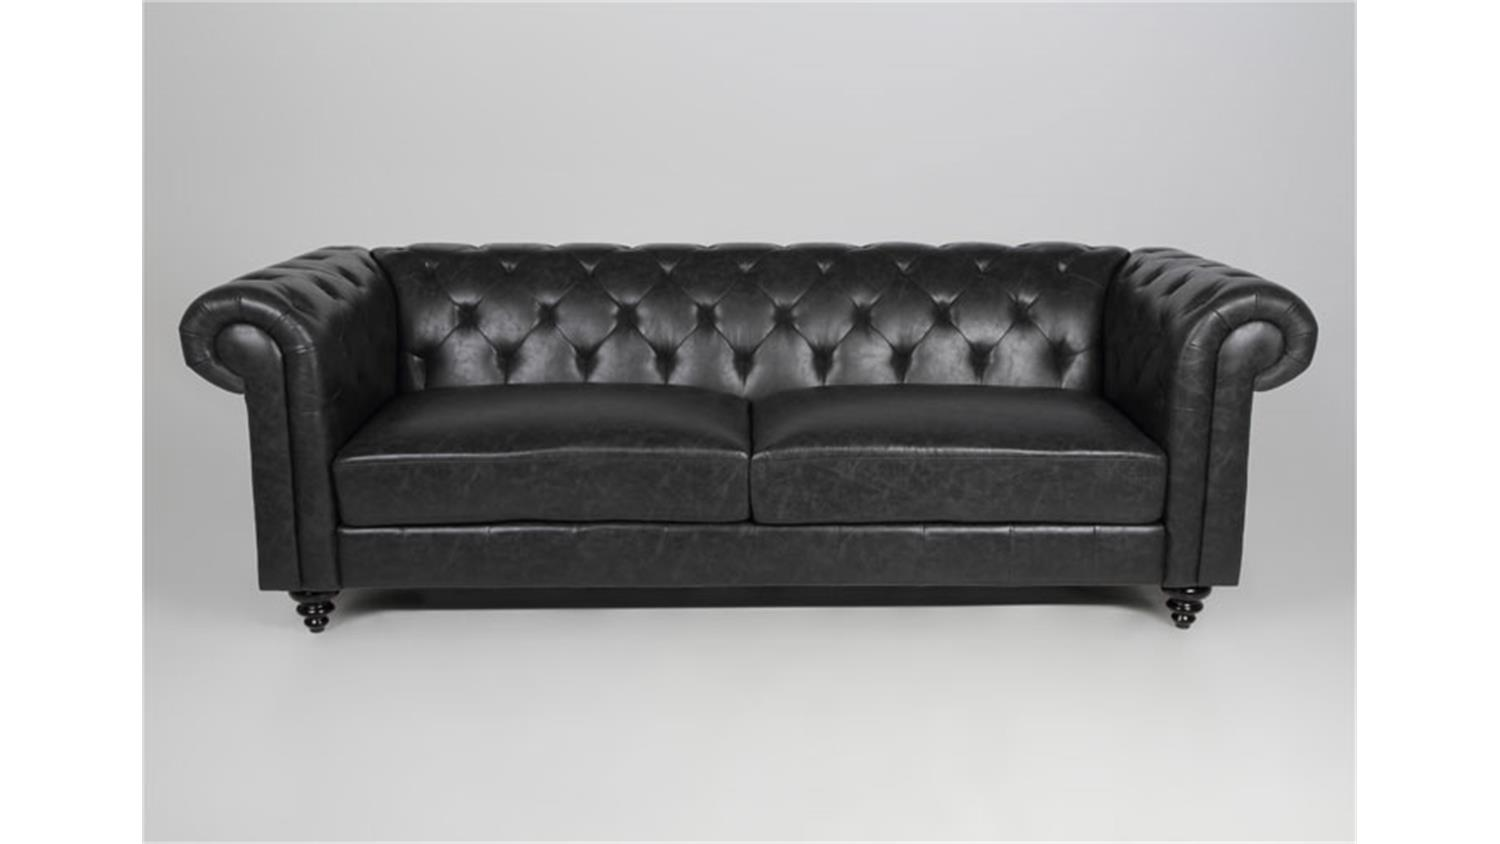 sofa 160 breit perfect created with sketch created with. Black Bedroom Furniture Sets. Home Design Ideas